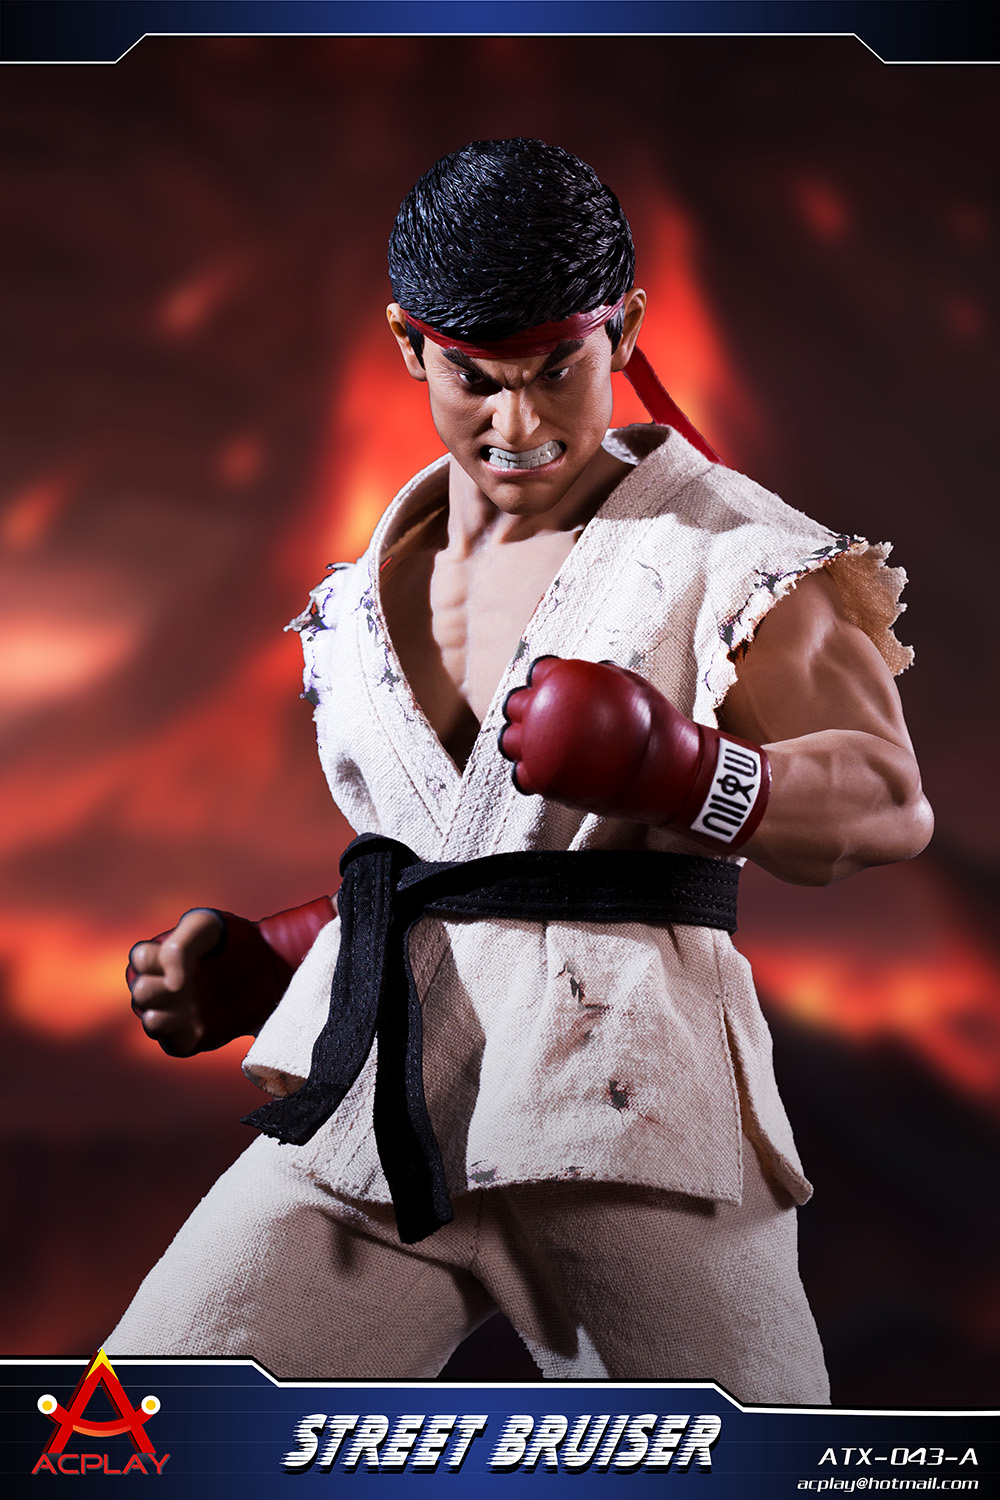 NEW PRODUCT: ACPLAY new products: 1/6 ATX043 Street Fighters practice martial arts A/B suit 11183610